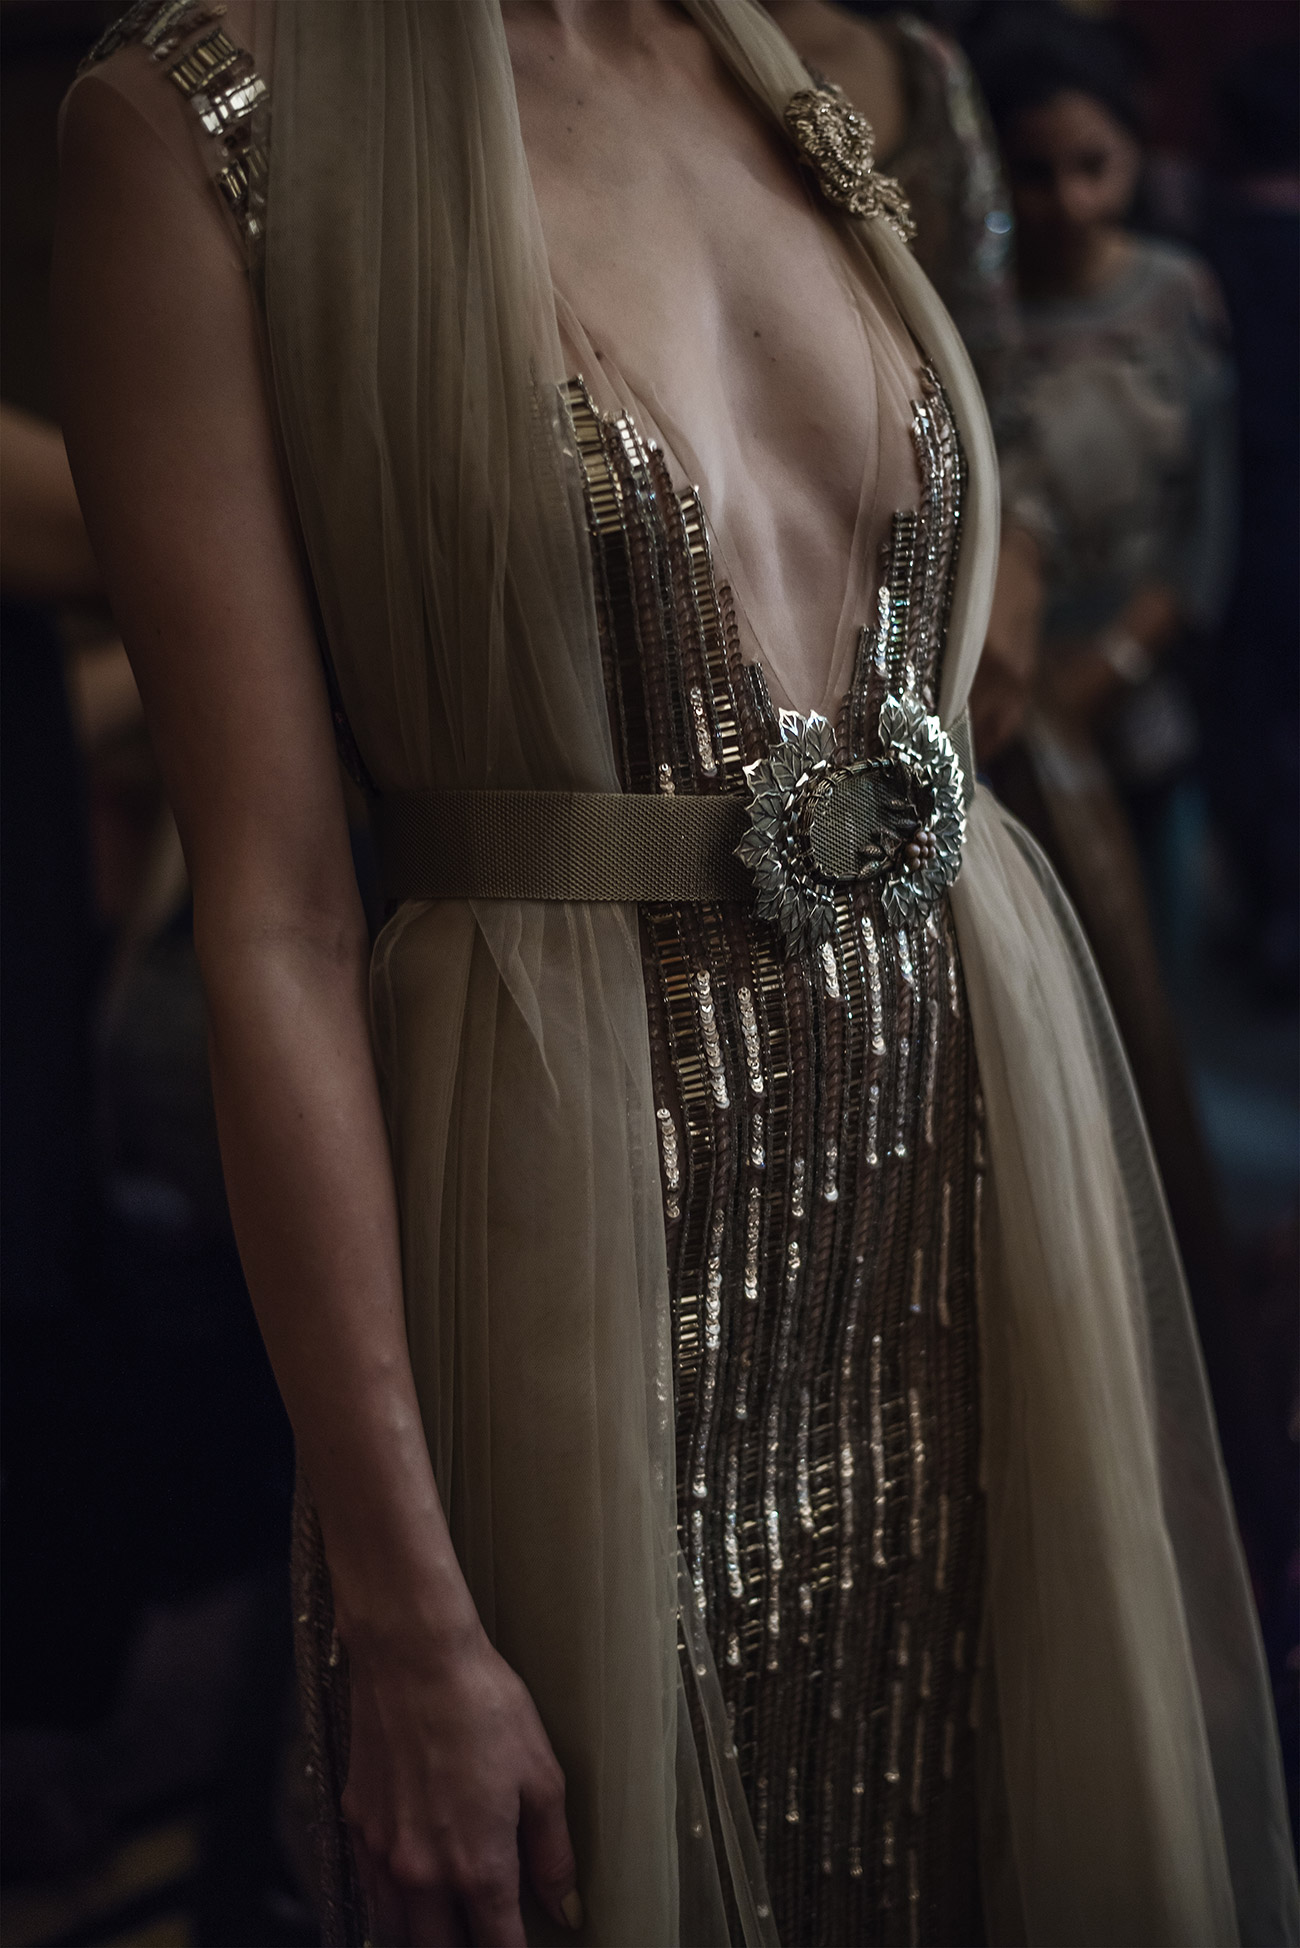 Backstage FDCI India Couture Week 2016 Photo by RAWKY KSH 16